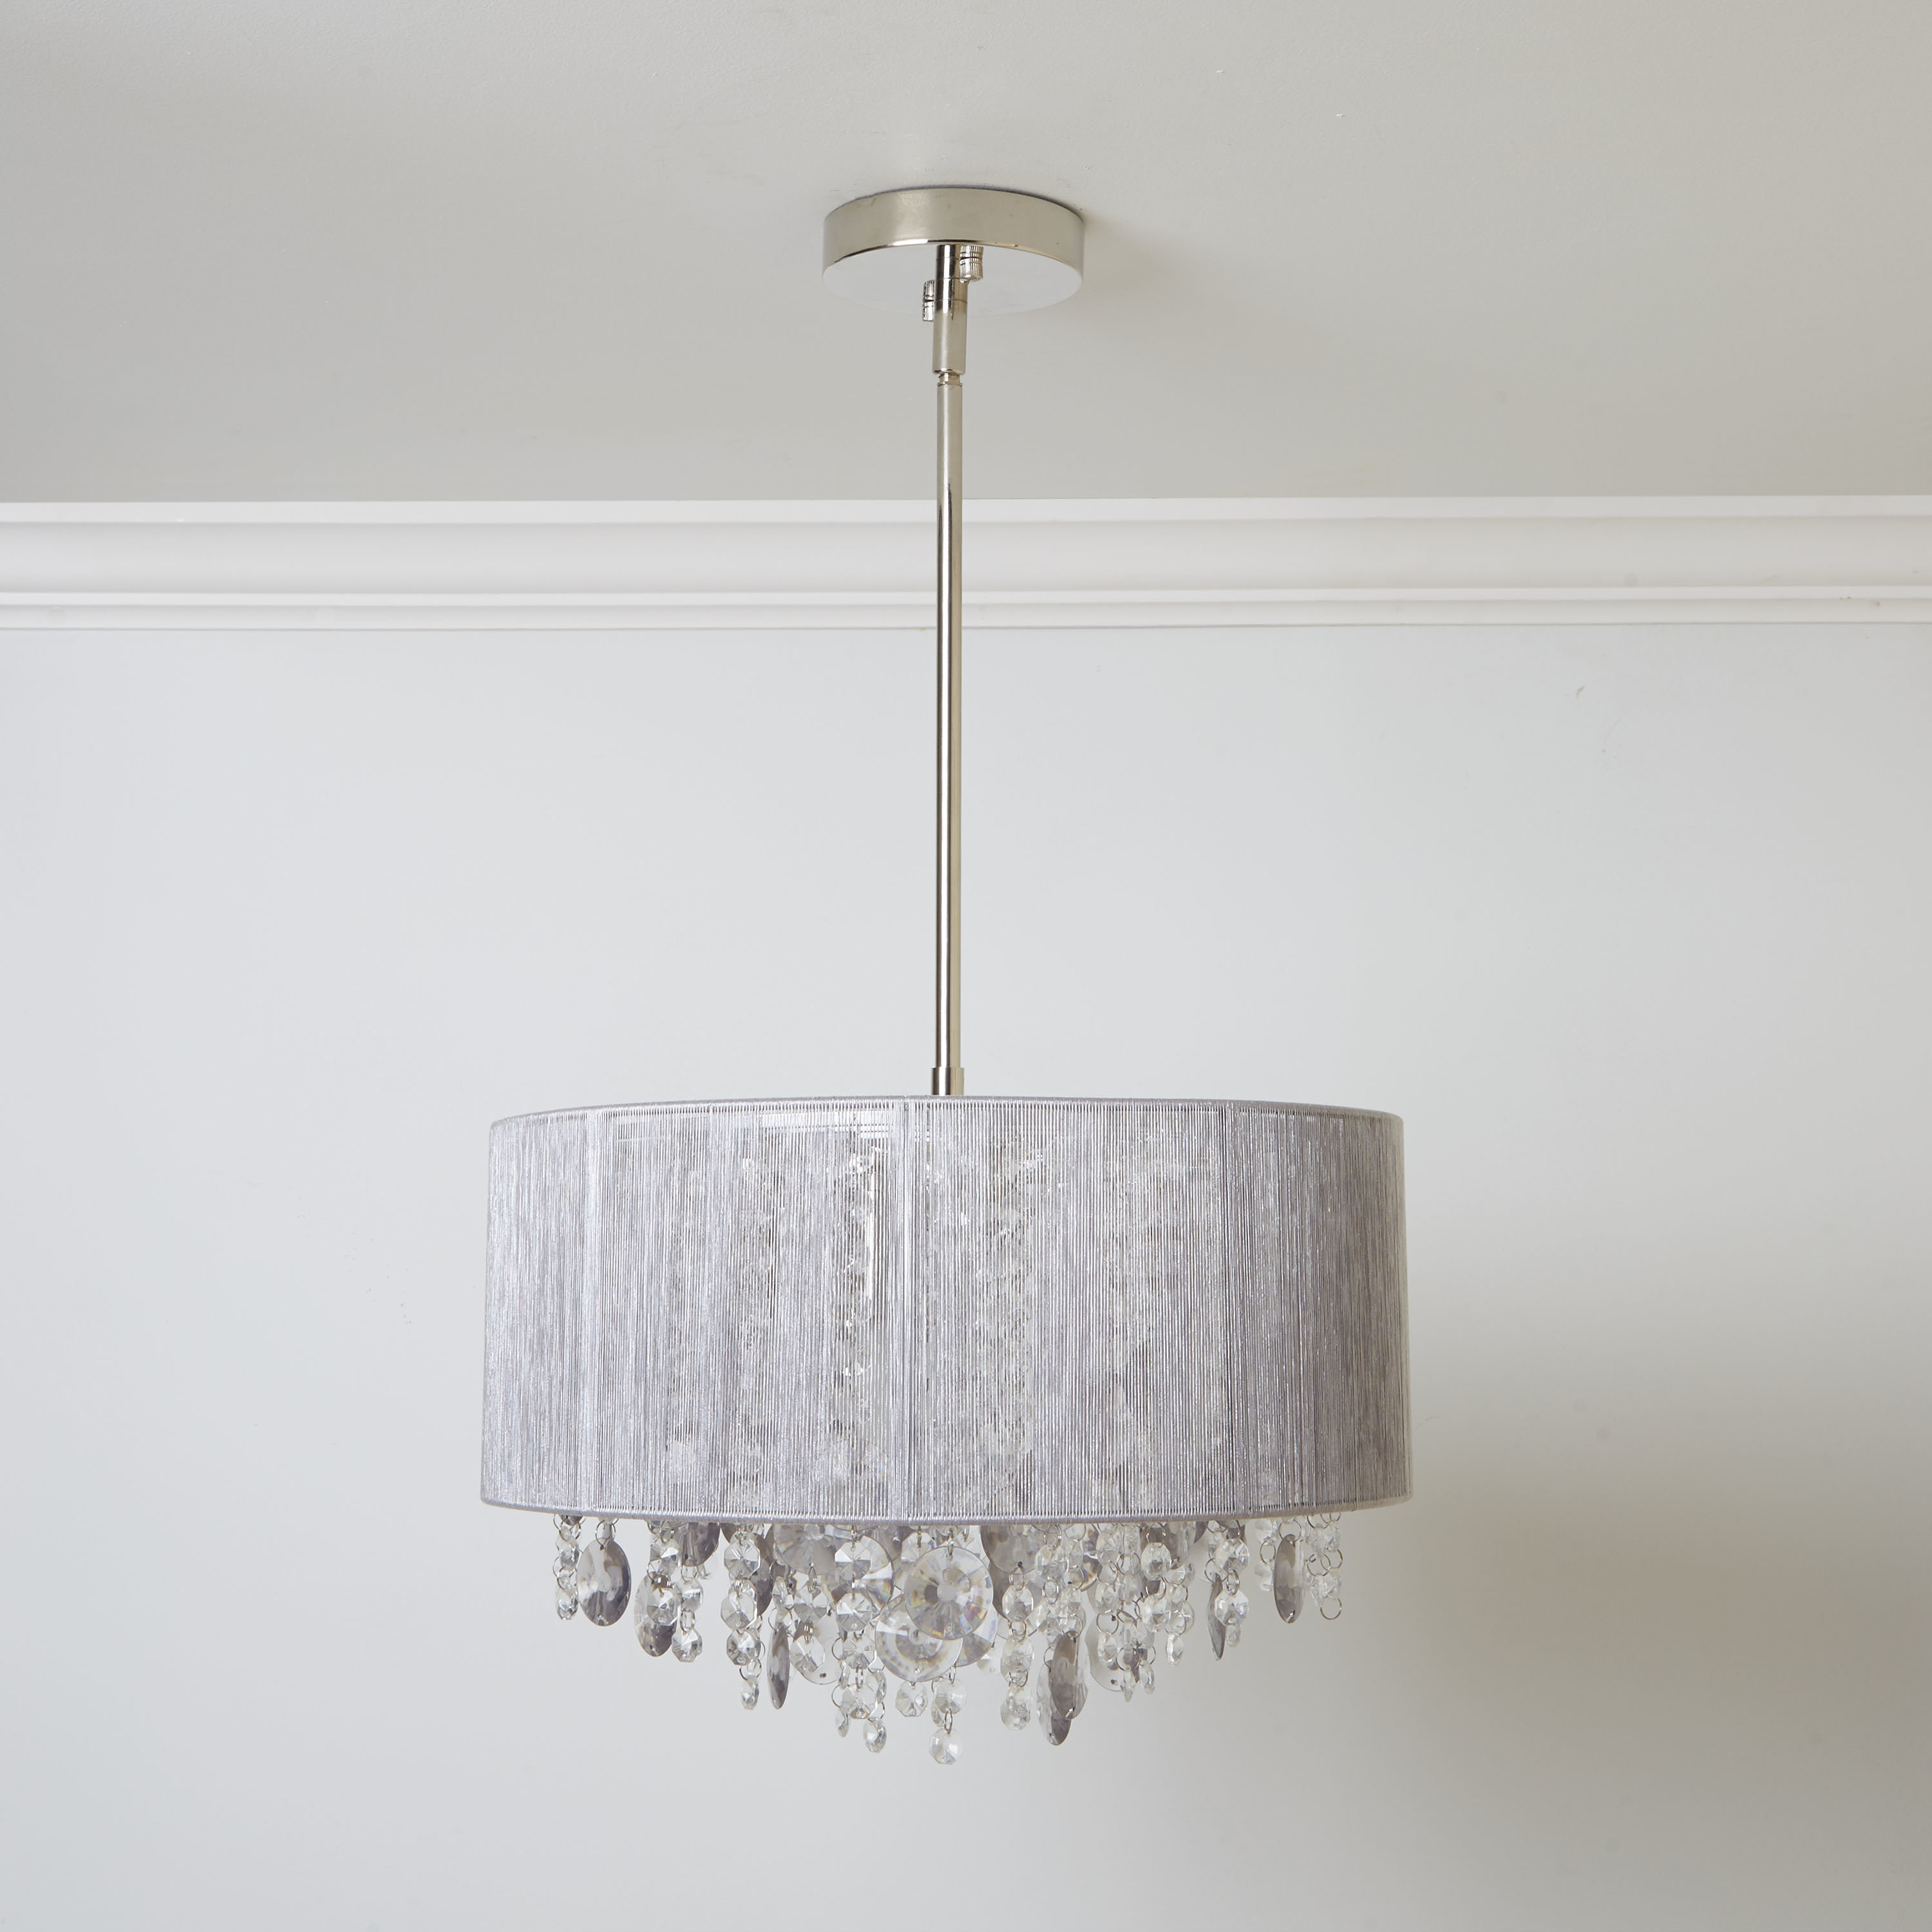 Wayfair Within Famous Willems 1 Light Single Drum Pendants (View 16 of 20)